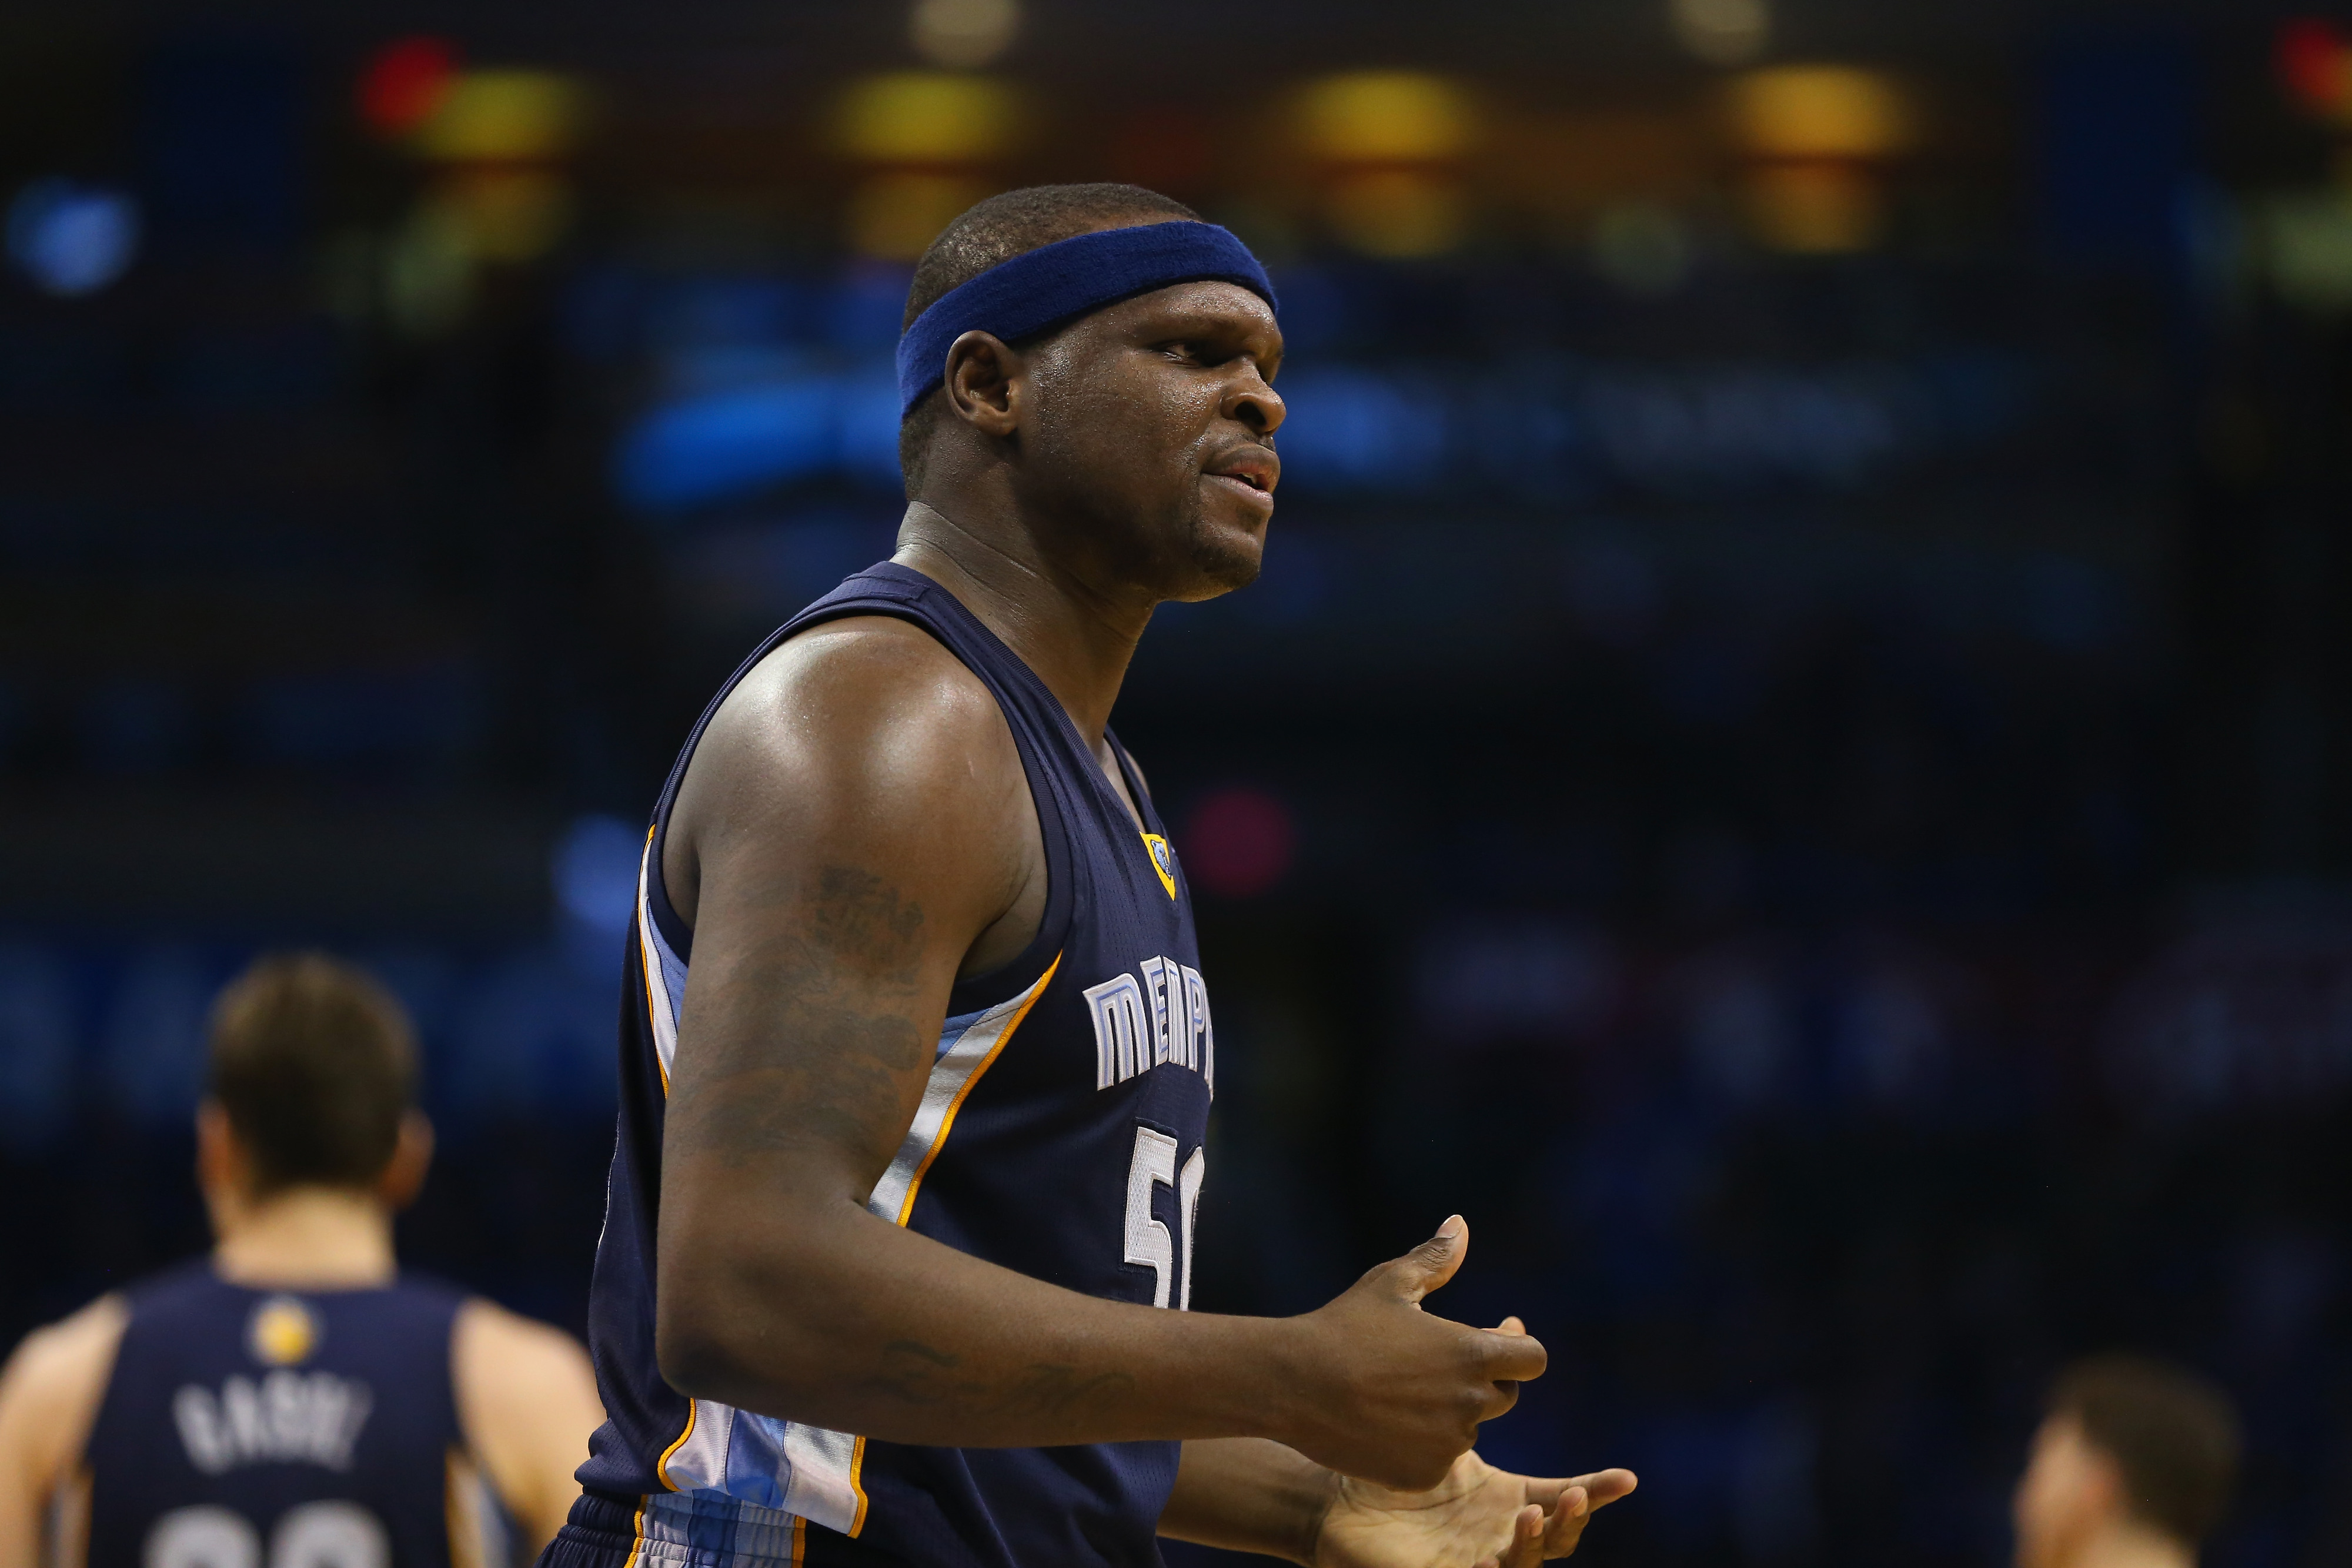 Zach Randolph was a key cog to the Grizzly machine this season.